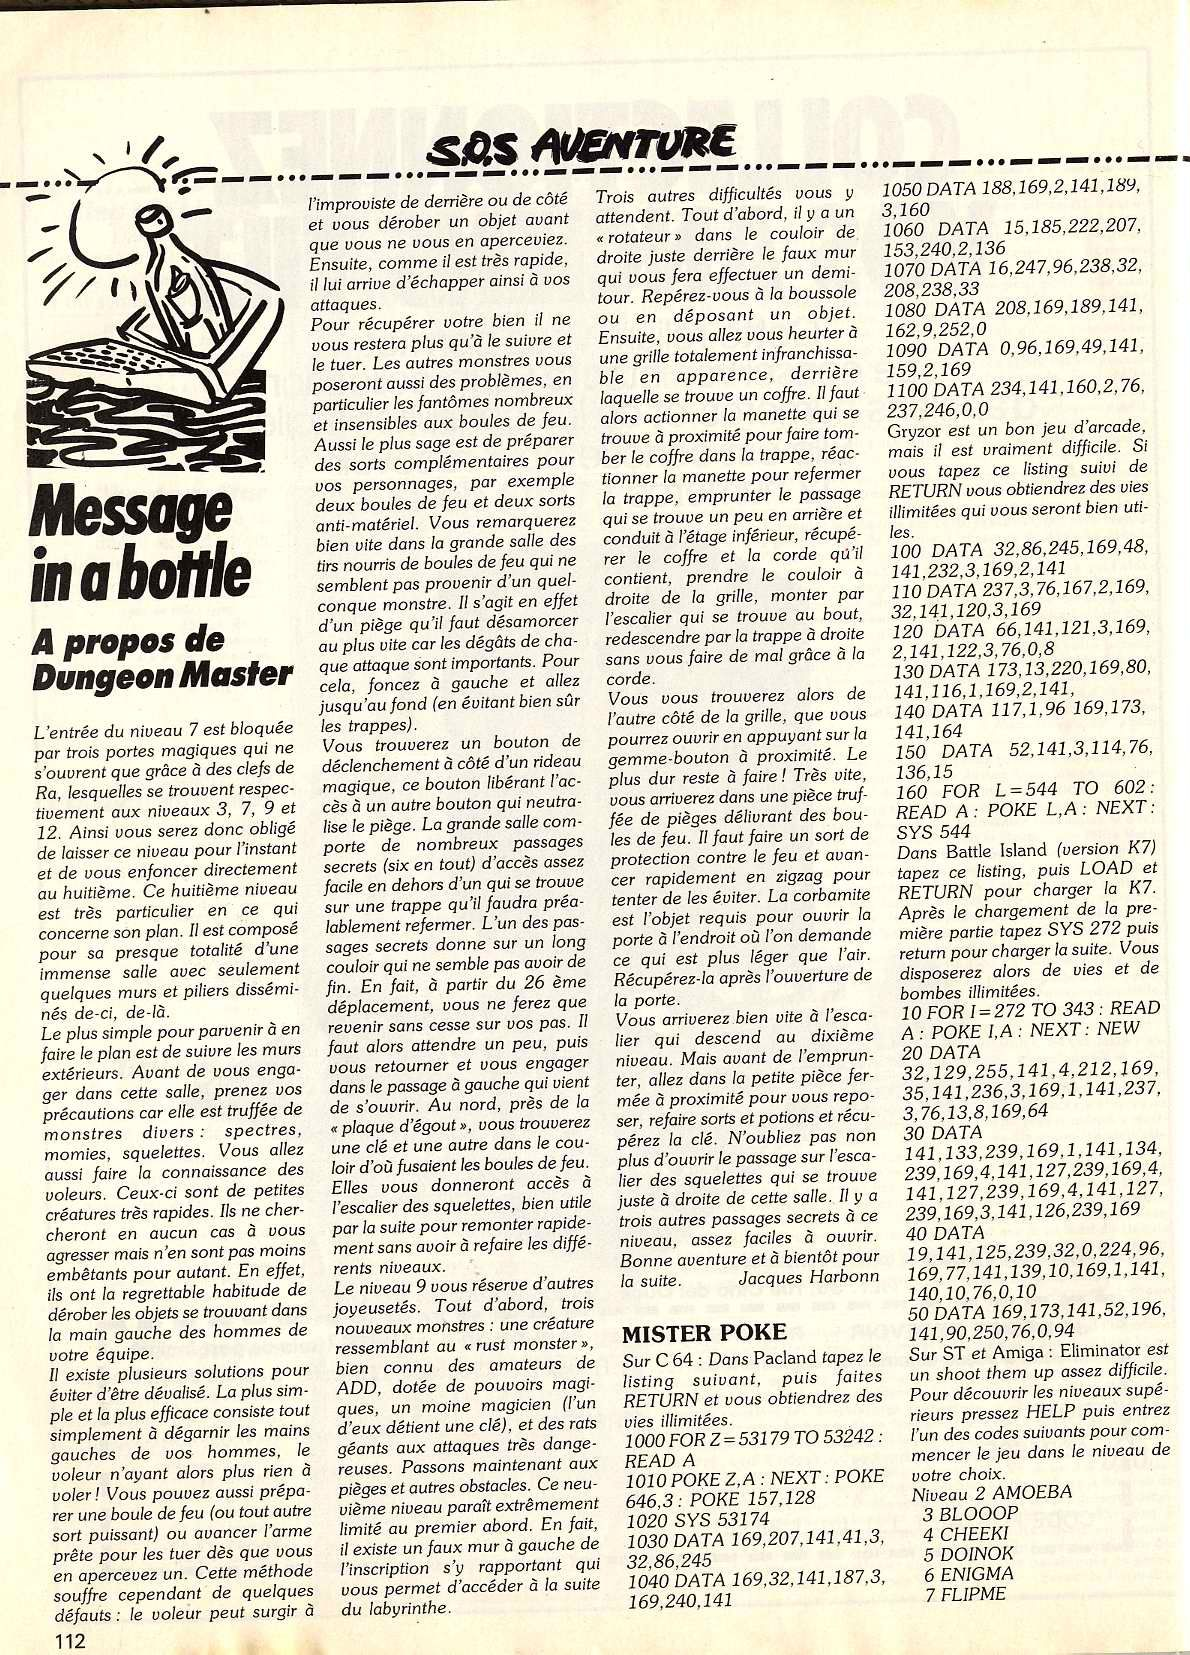 Dungeon Master Hints published in French magazine 'Tilt', Issue #64, March 1989, Page 112